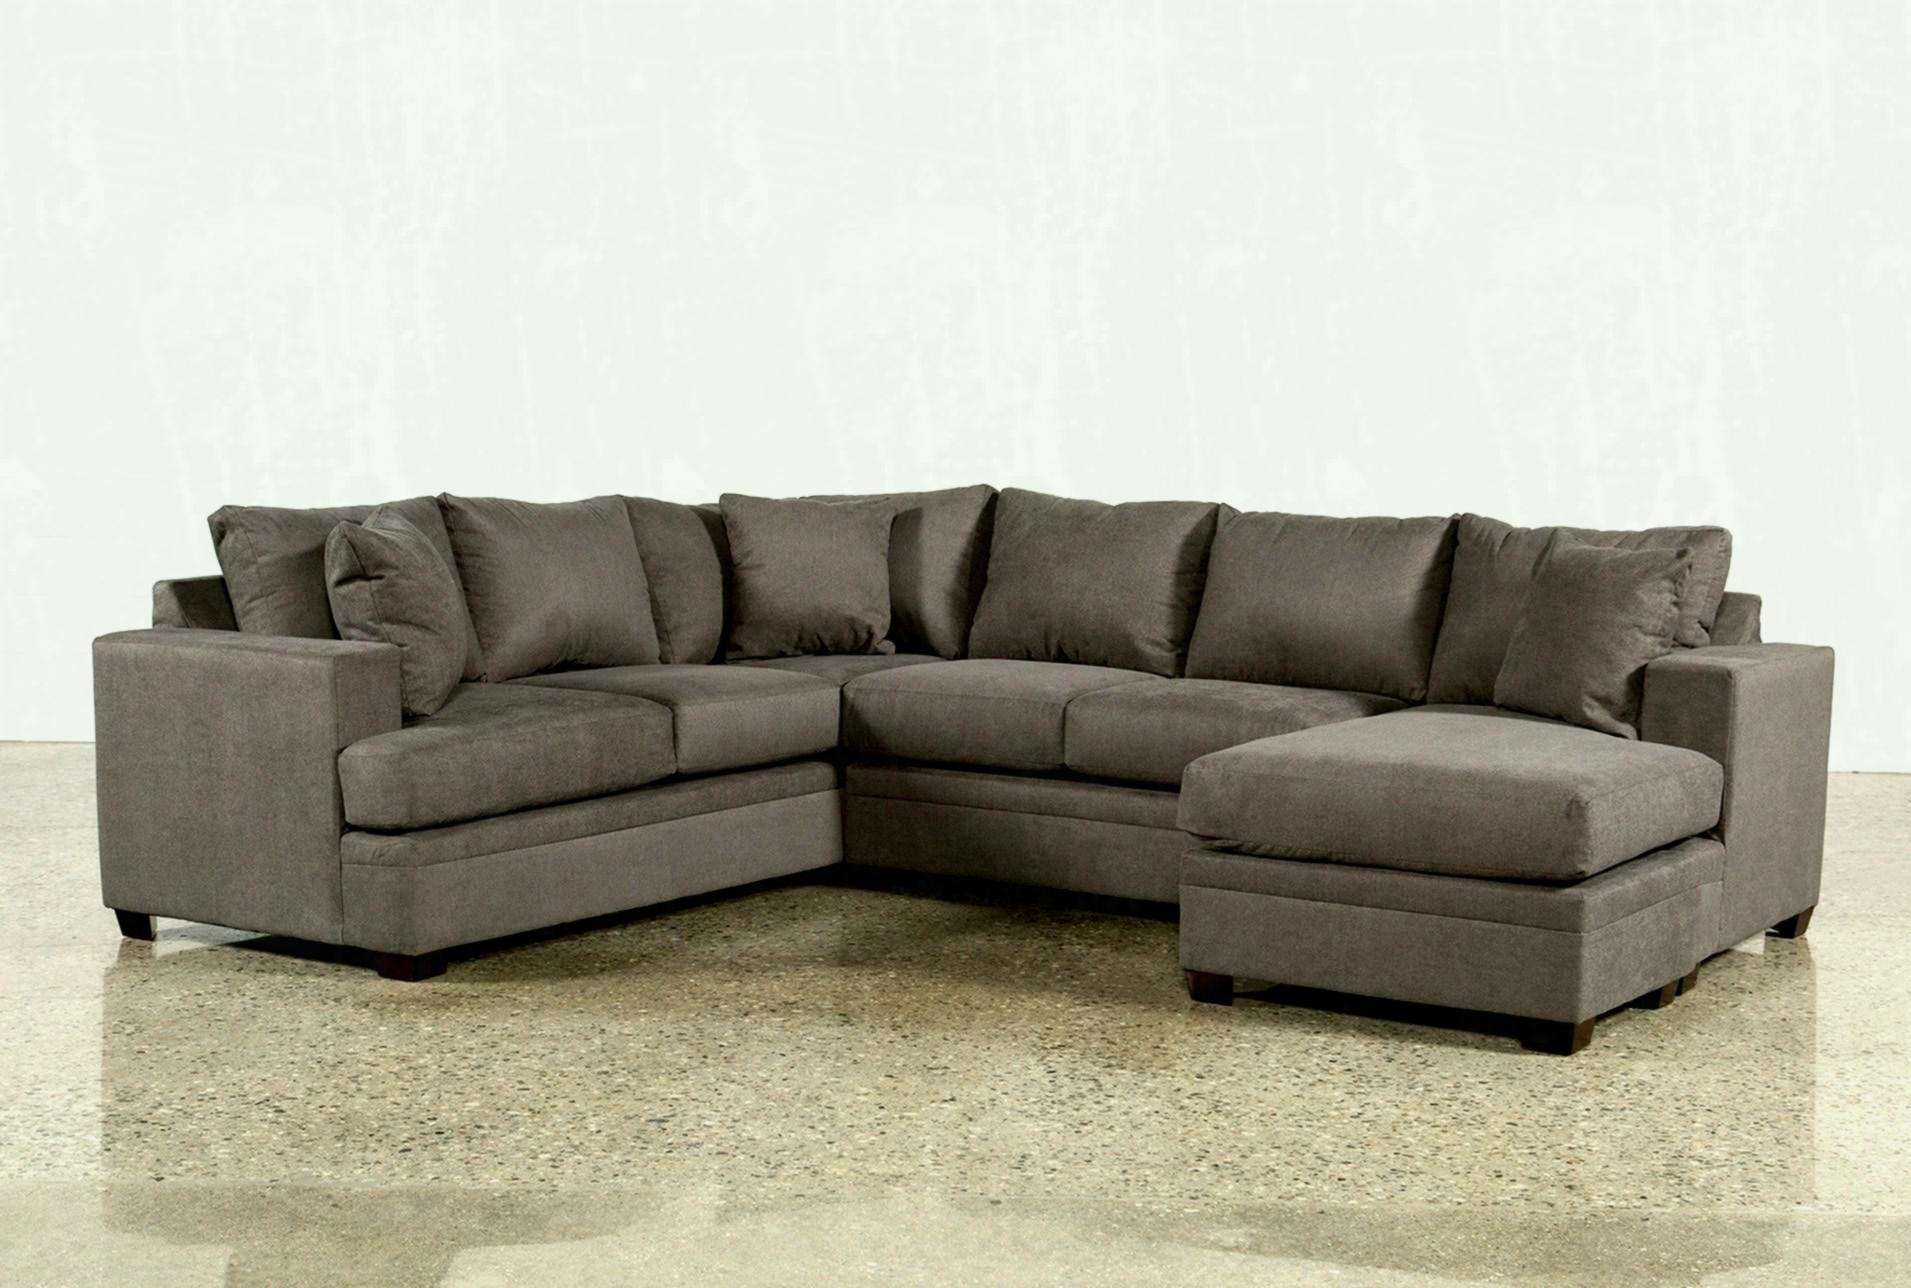 Added To Cart Kerri Piece Sectional W Raf Chaise Living Spaces pertaining to Aquarius Light Grey 2 Piece Sectionals With Laf Chaise (Image 5 of 30)